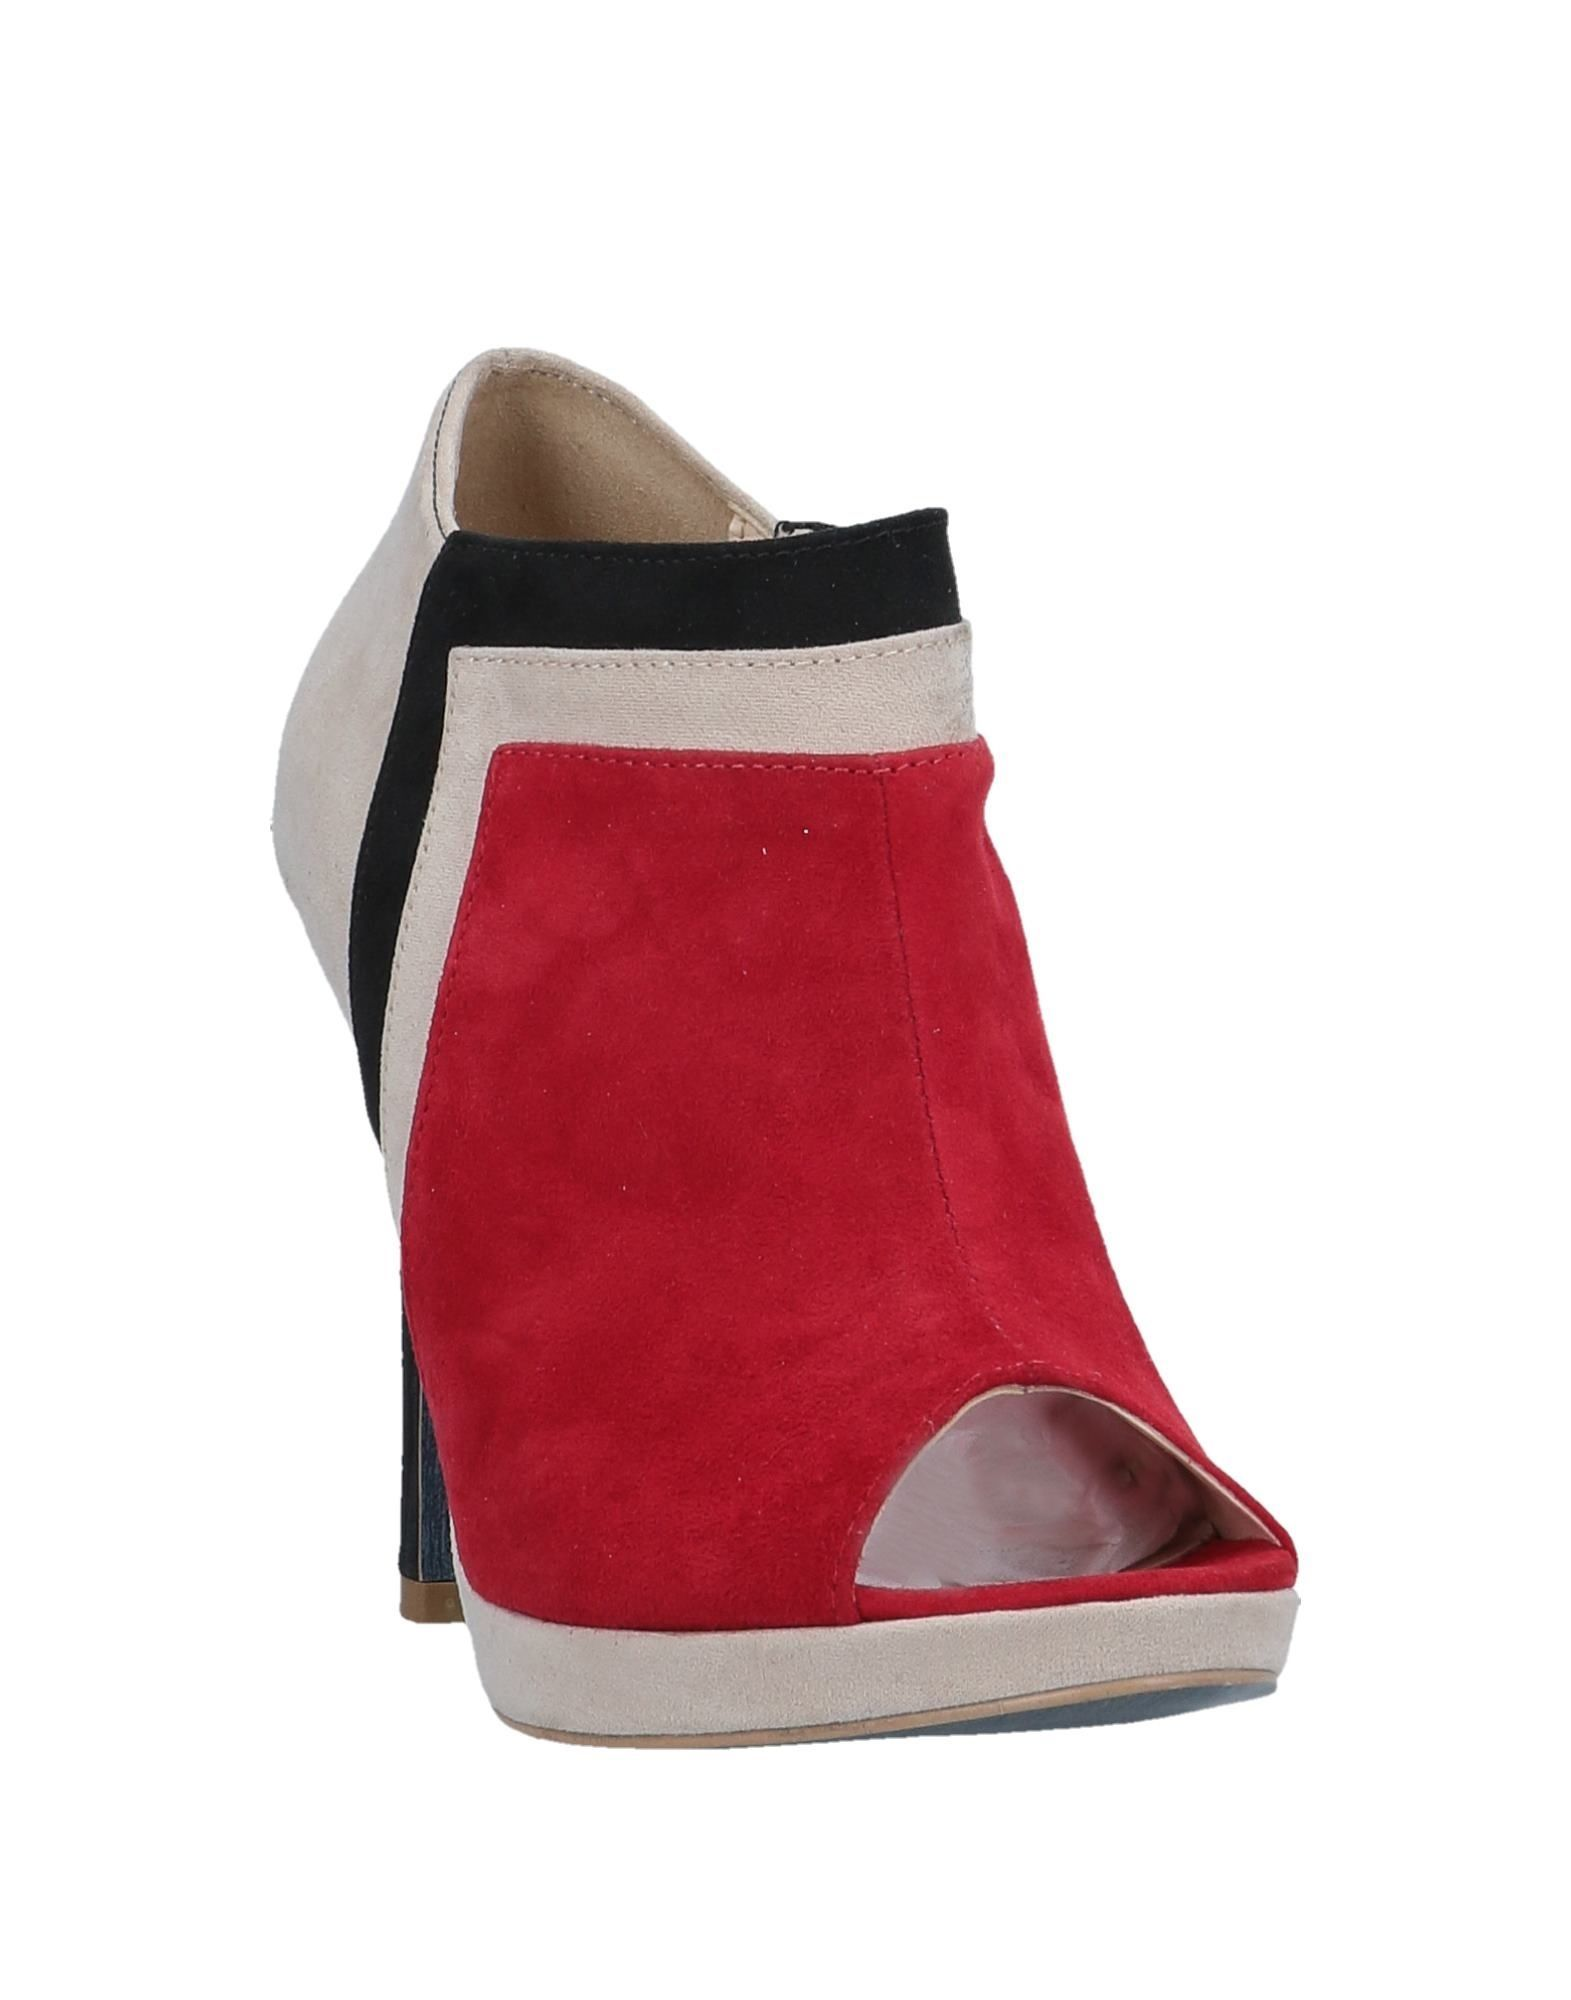 Trussardi Jeans Women's Shoe Boots Red Leather